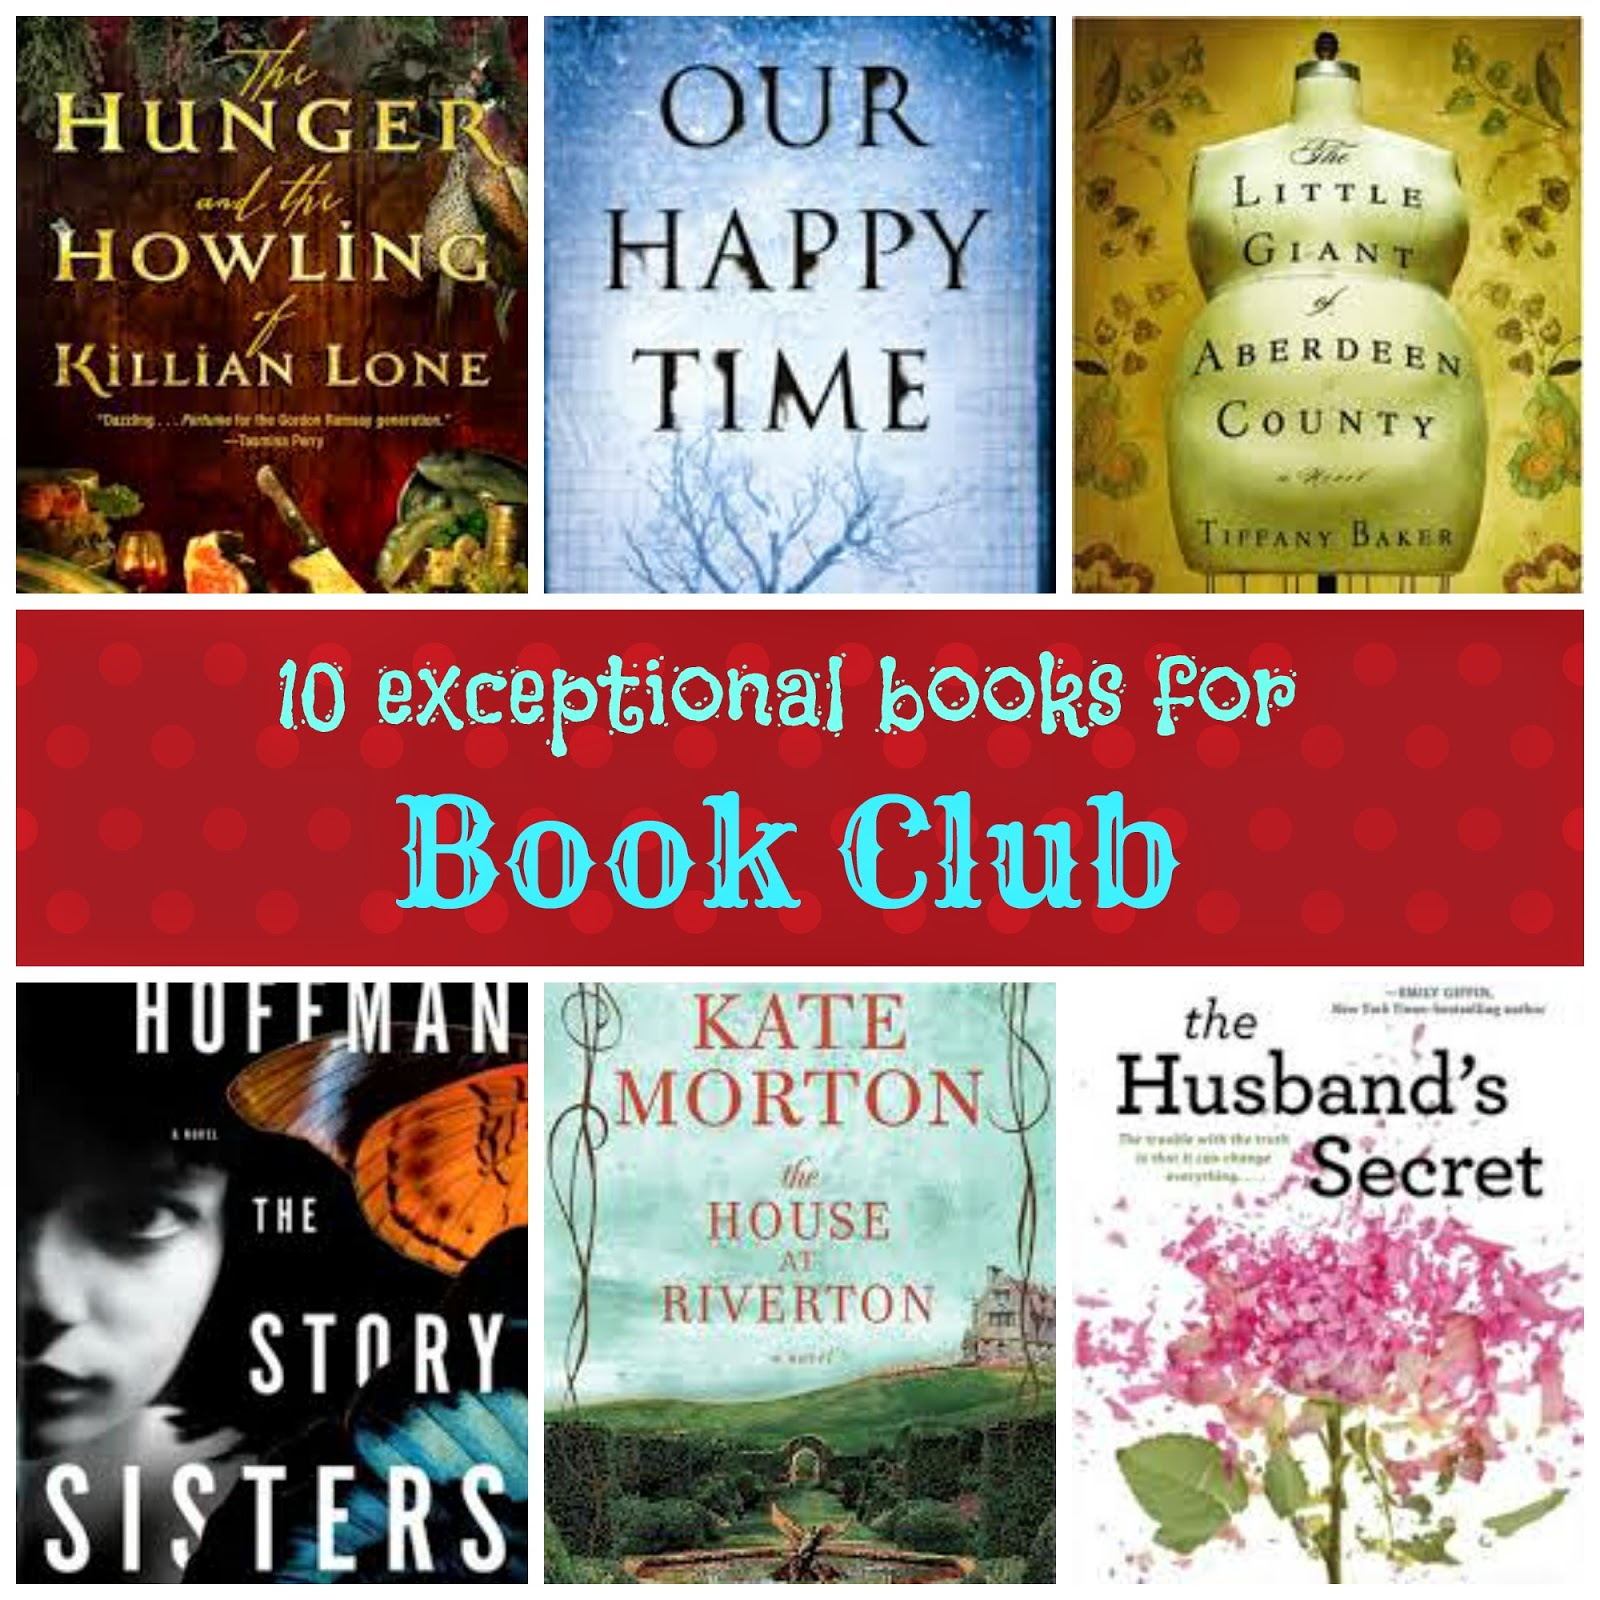 List of Books for Book Club